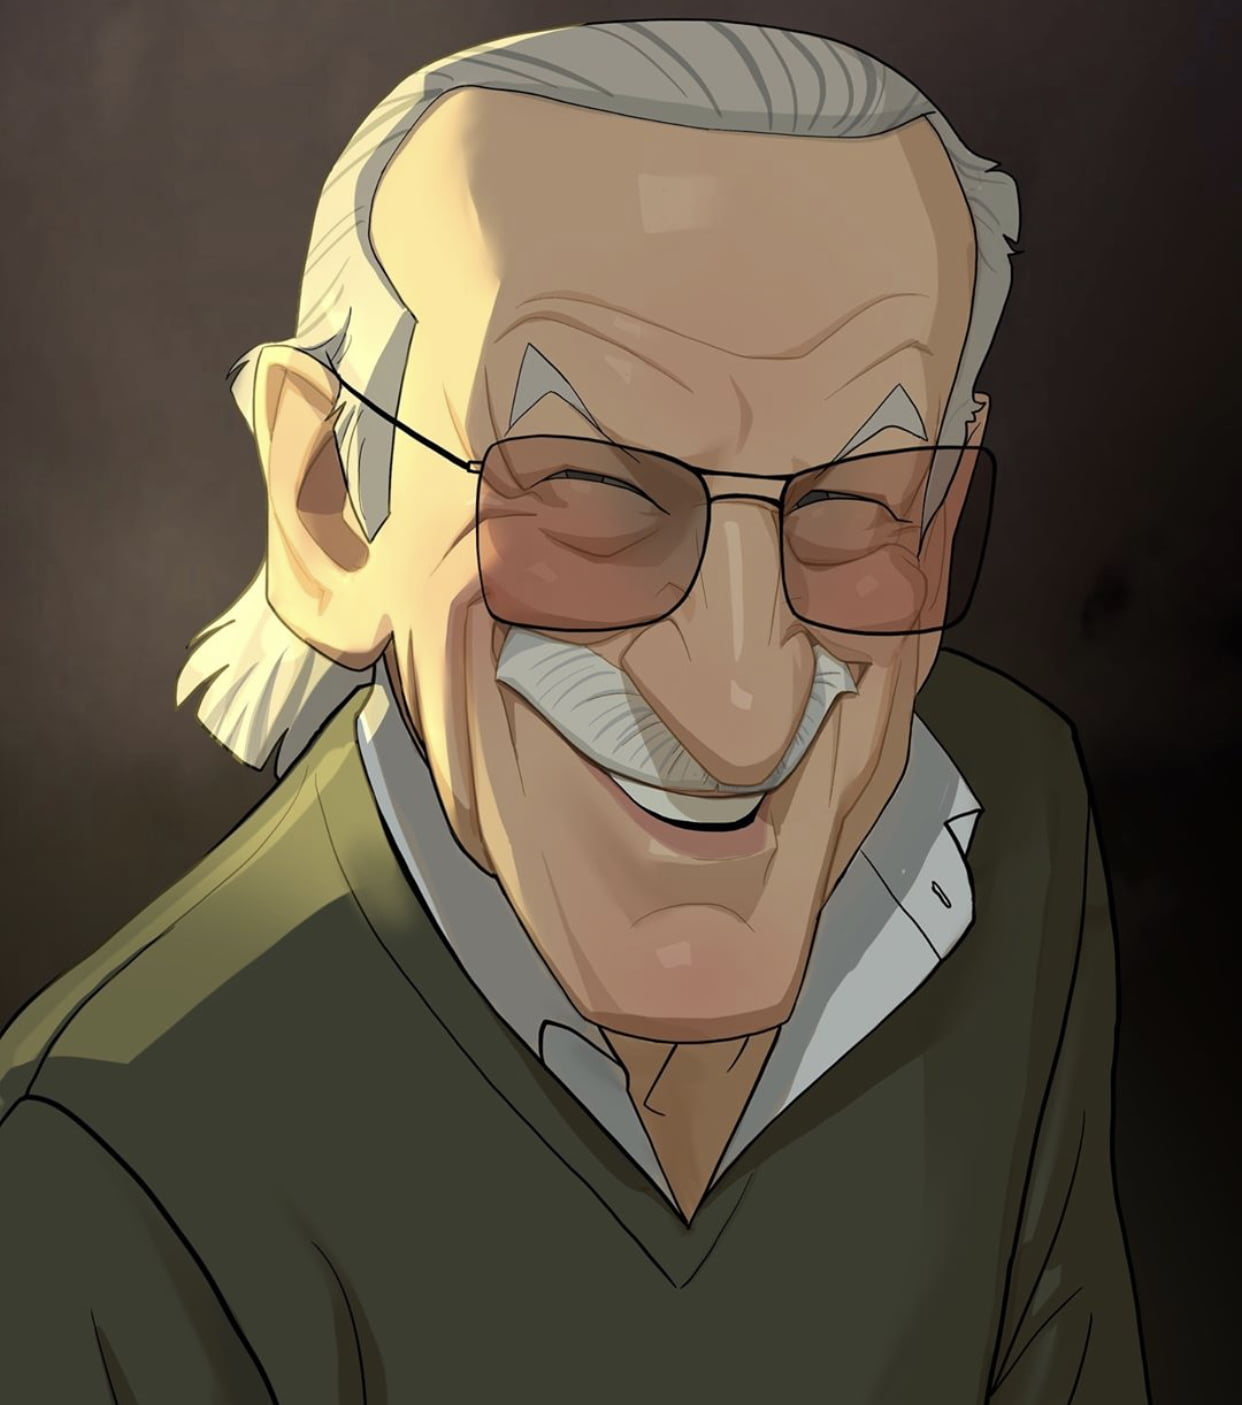 Stan Lee, Caricature by Xi Ding, from Austria